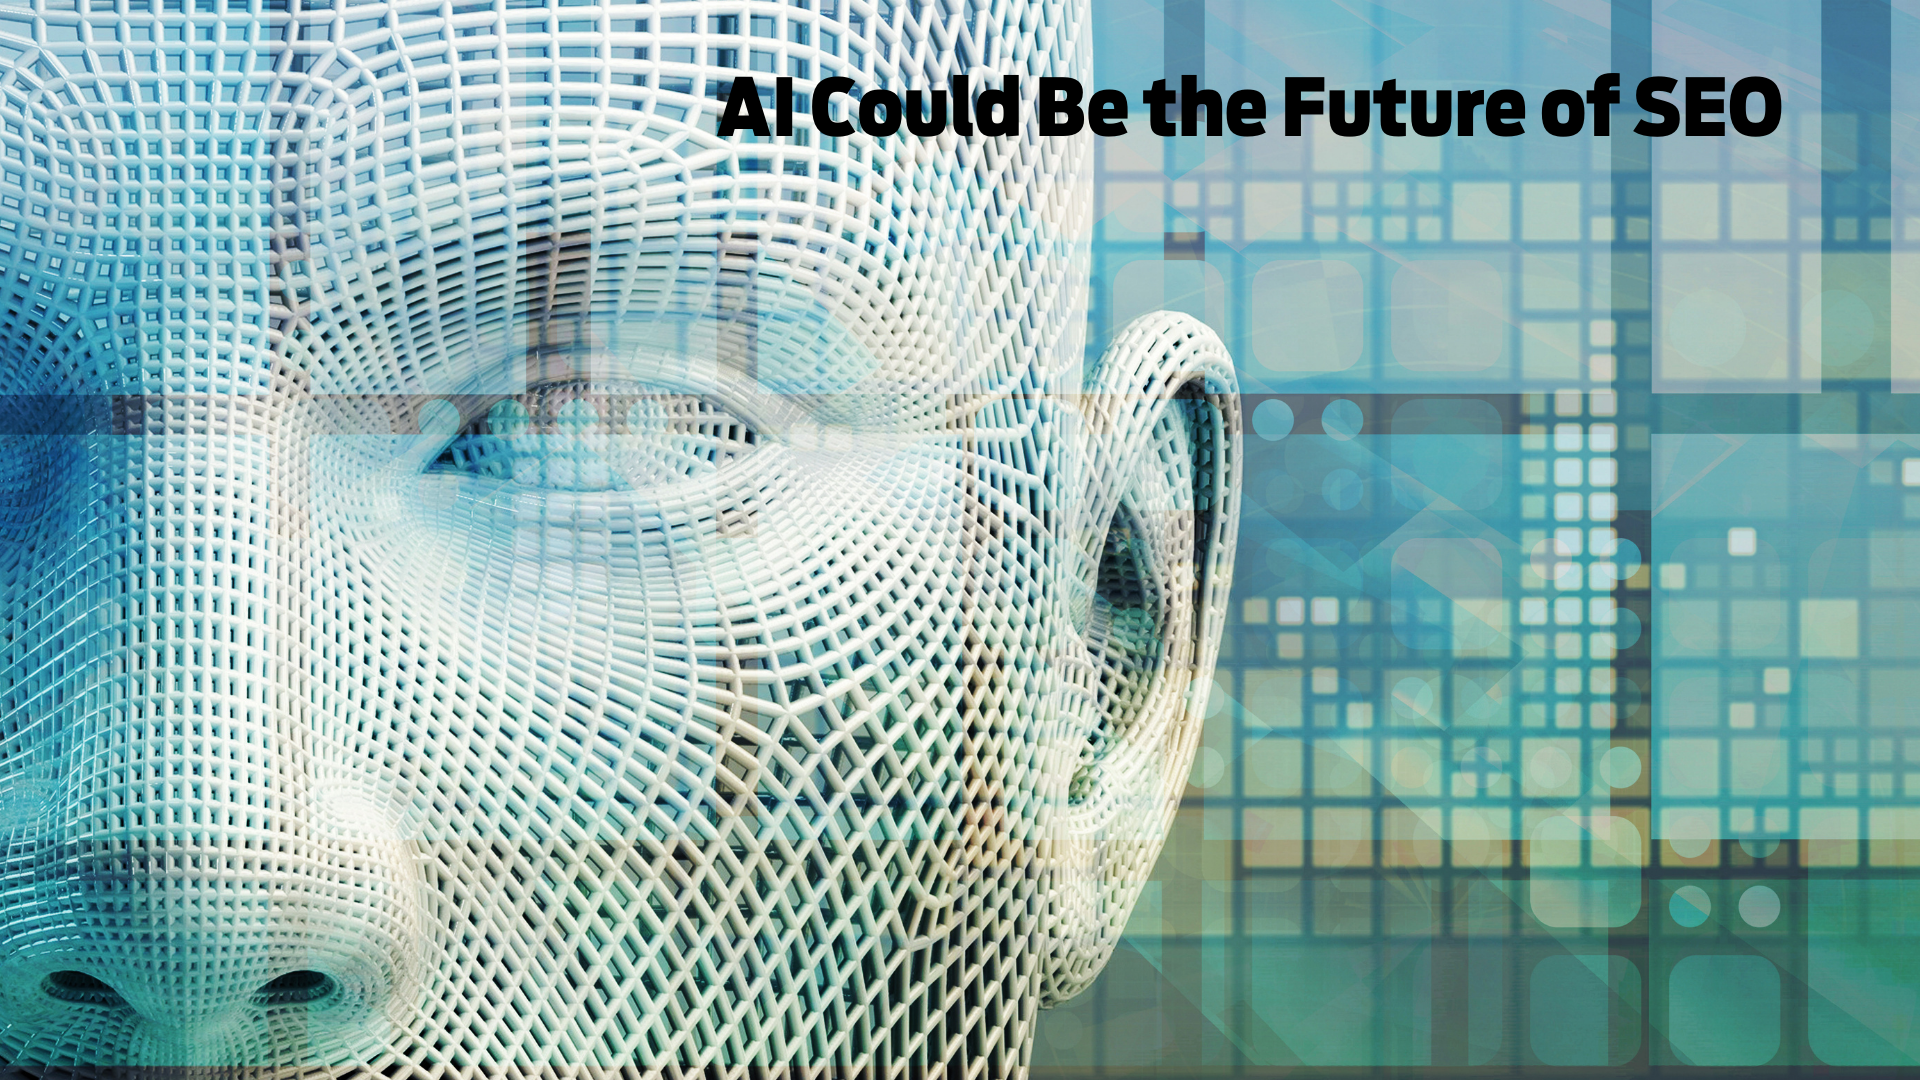 AI Could Be the Future of SEO